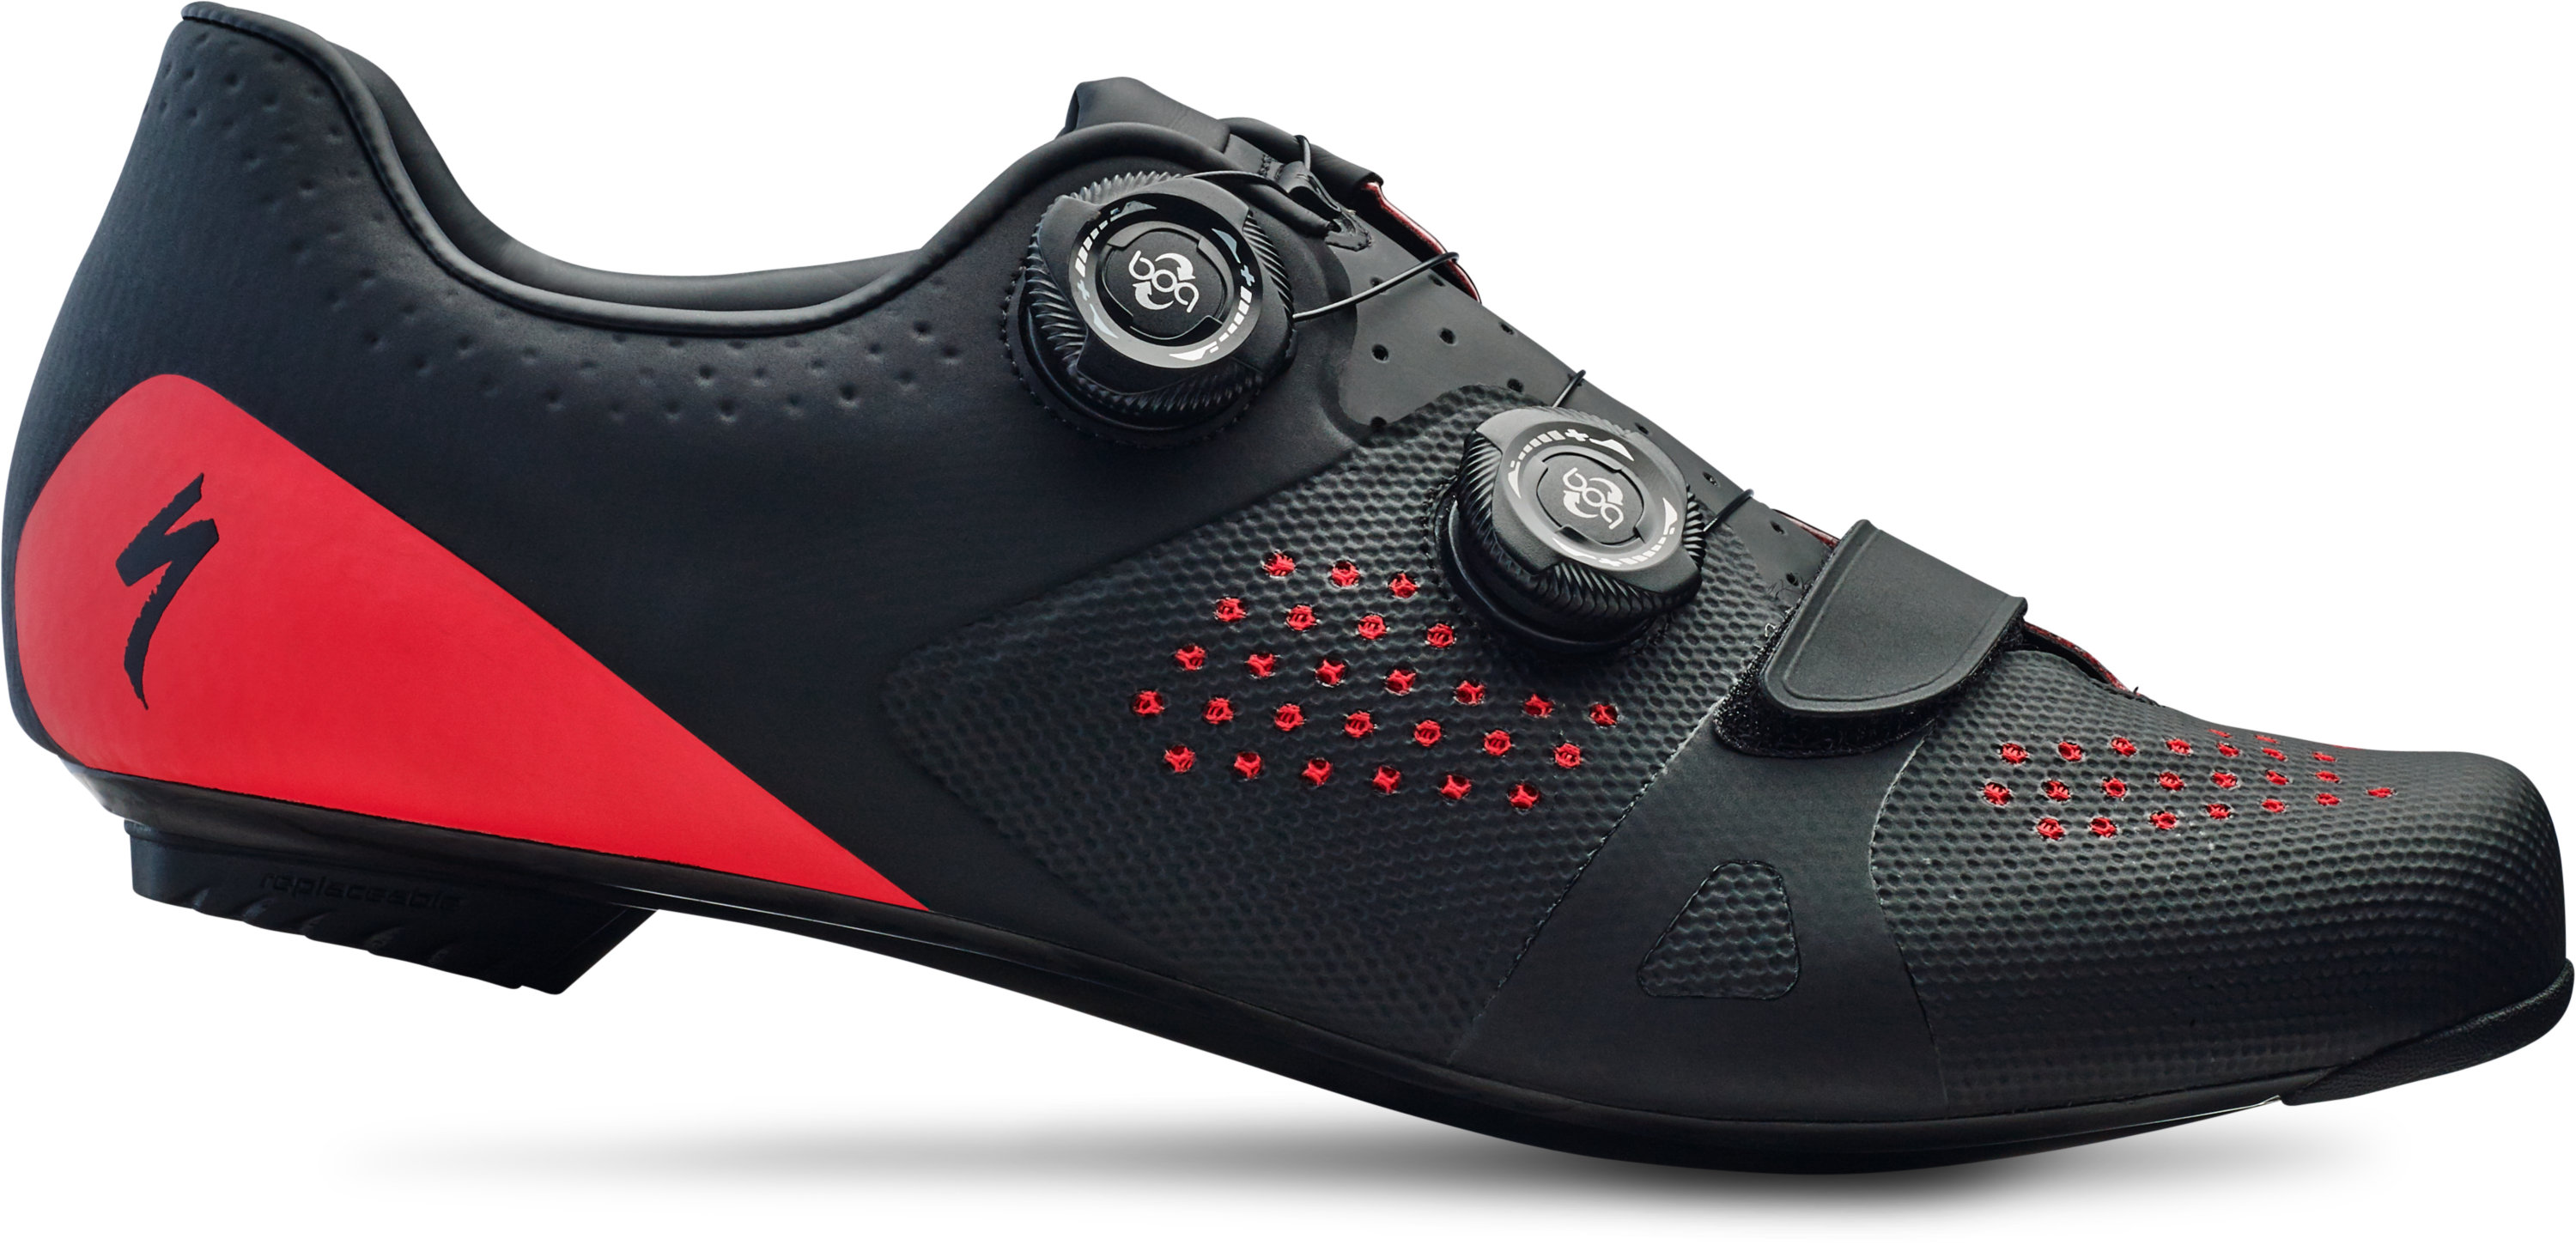 New Specialized Torch 3.0 Carbon BOA Road Bike Cycling Shoes *Multiple Sizes*